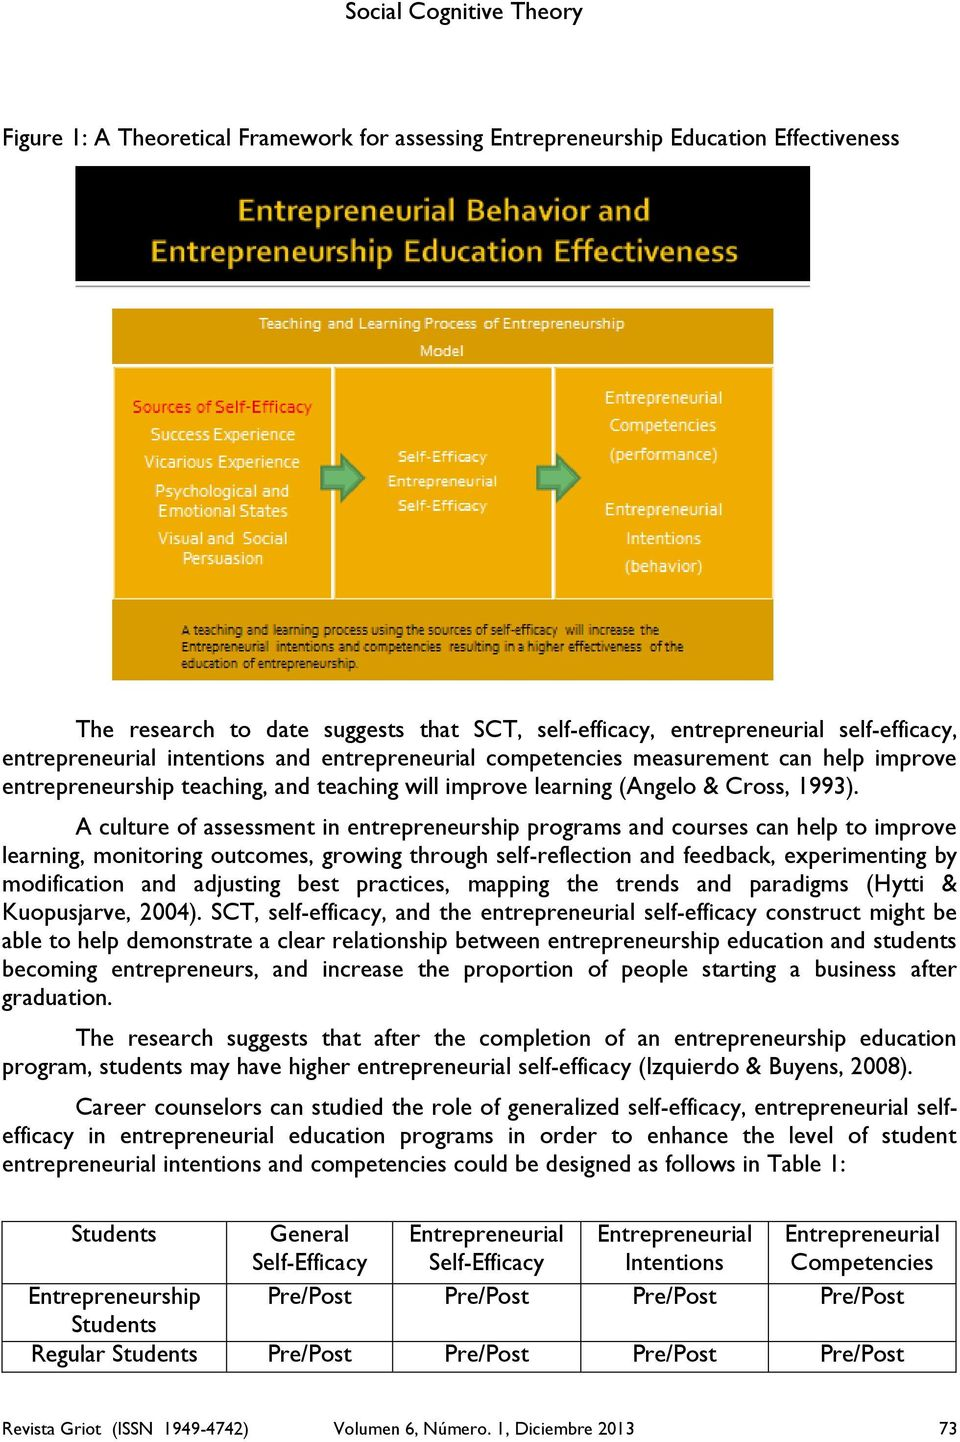 A culture of assessment in entrepreneurship programs and courses can help to improve learning, monitoring outcomes, growing through self-reflection and feedback, experimenting by modification and